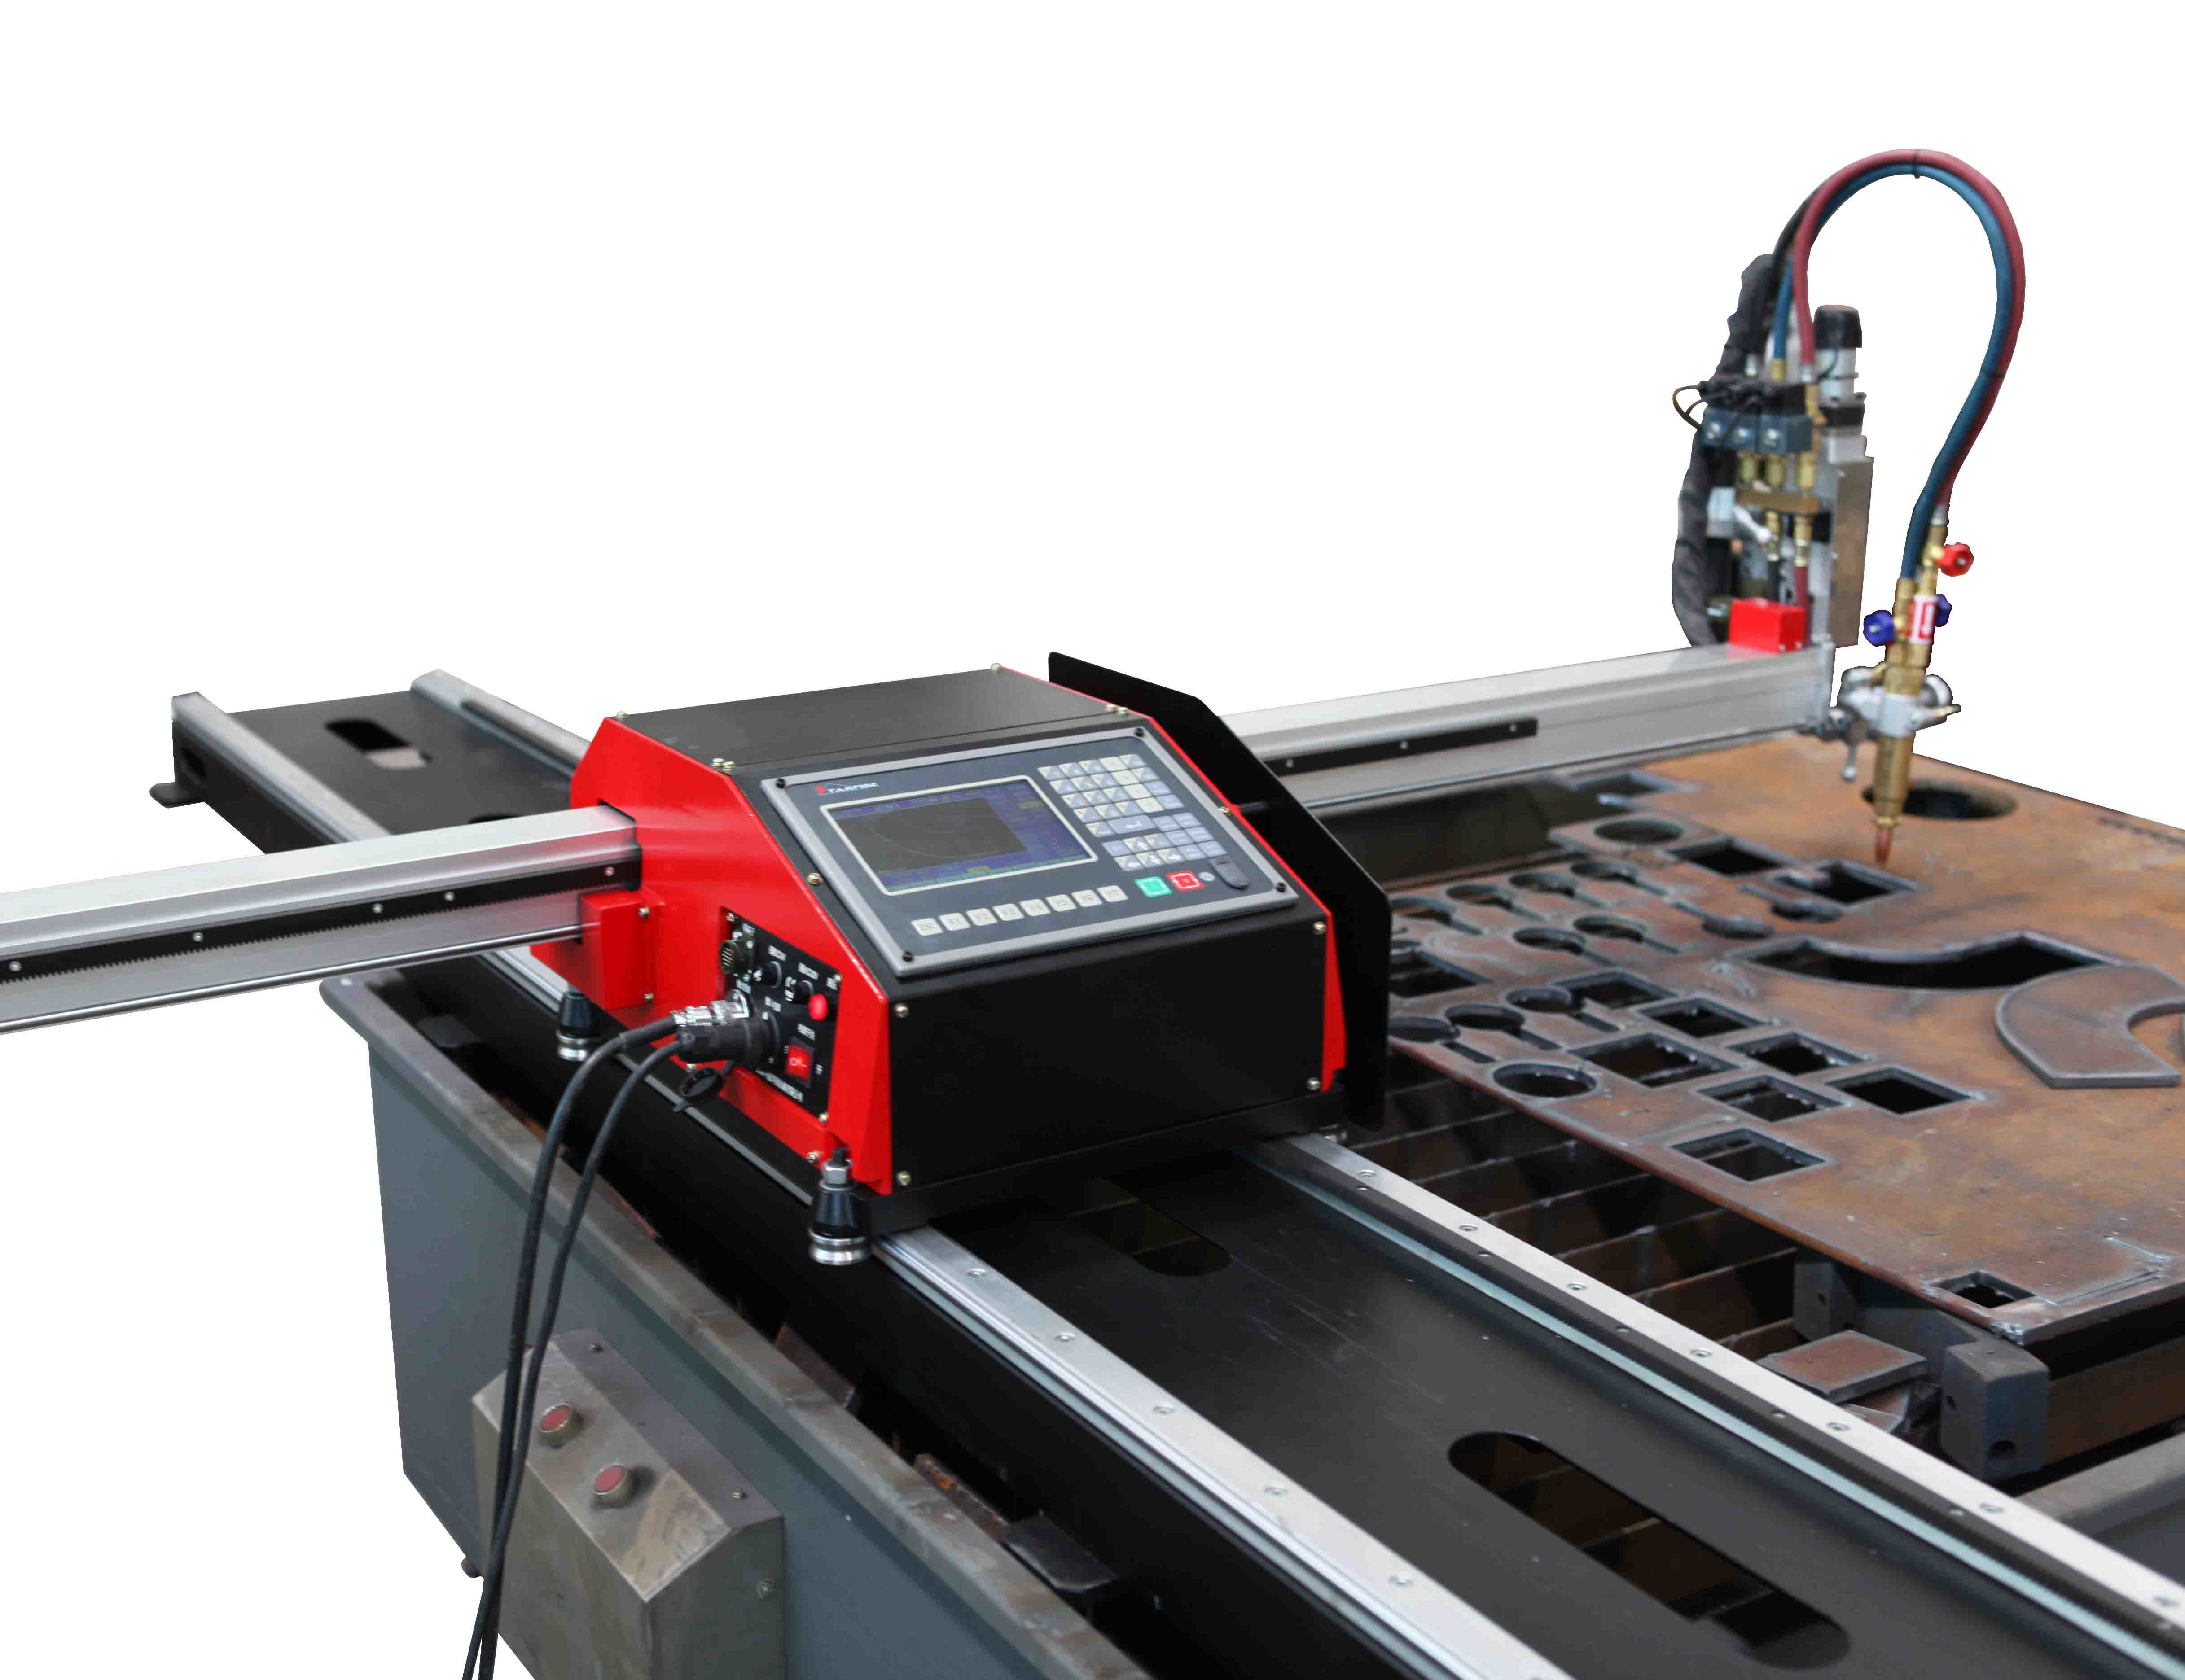 Hnc-1500W Good Quality Mini-Size Portable CNC Plasma Oxy Fuel Gas Cutting Machine Cutter